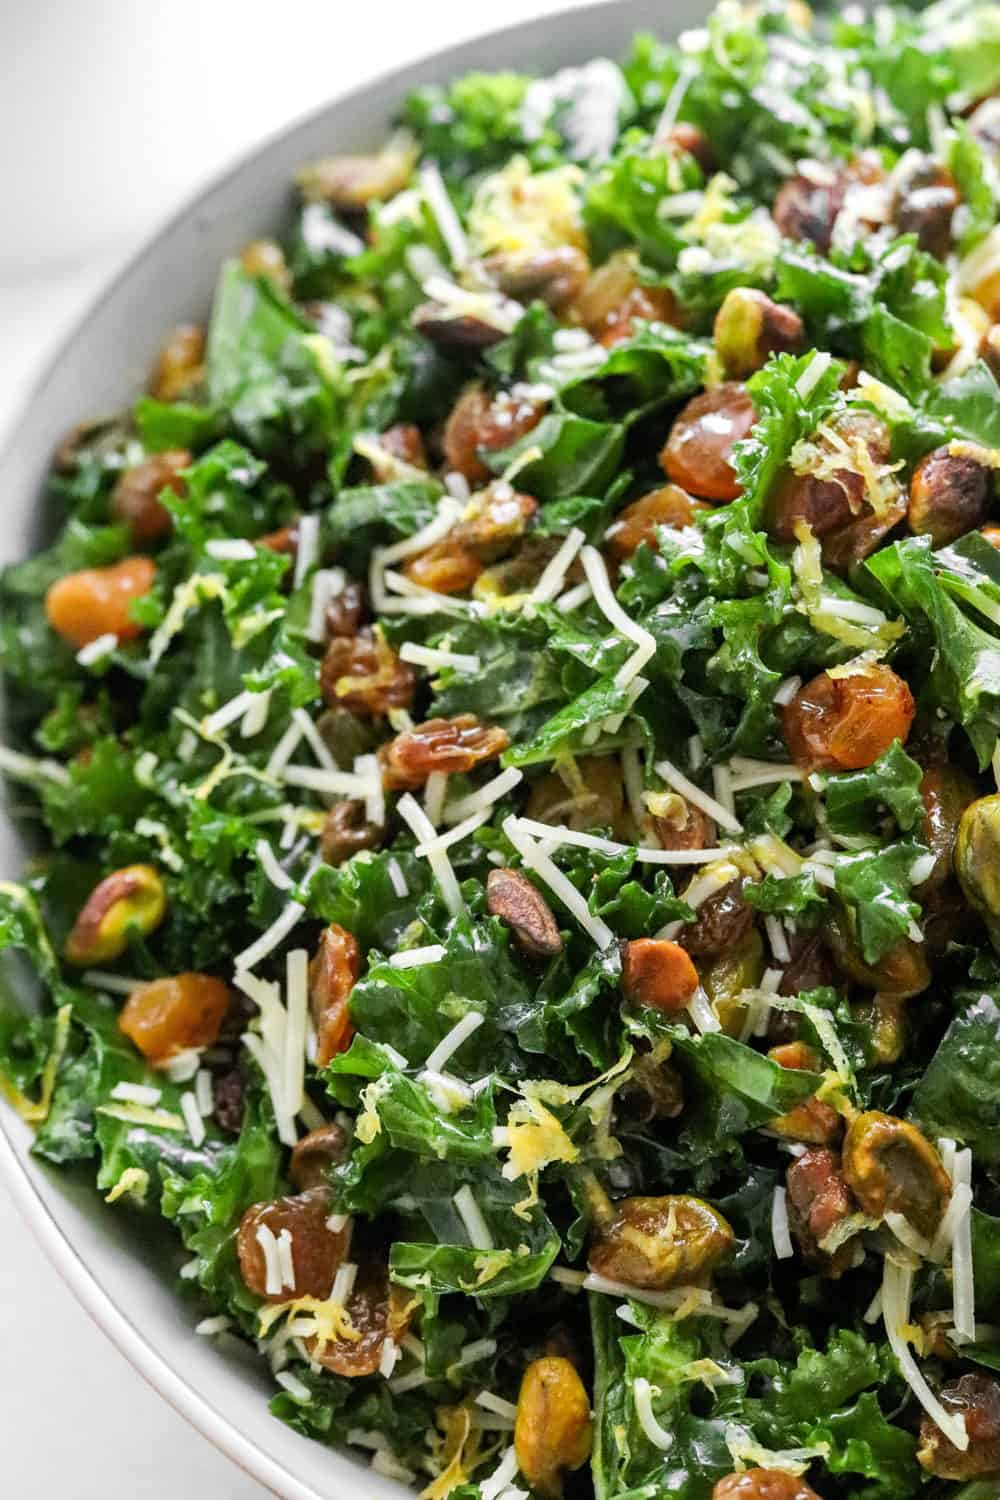 close up of shredded kale with nuts and raisins mixed into it and shredded cheese on top of it in a round white bowl